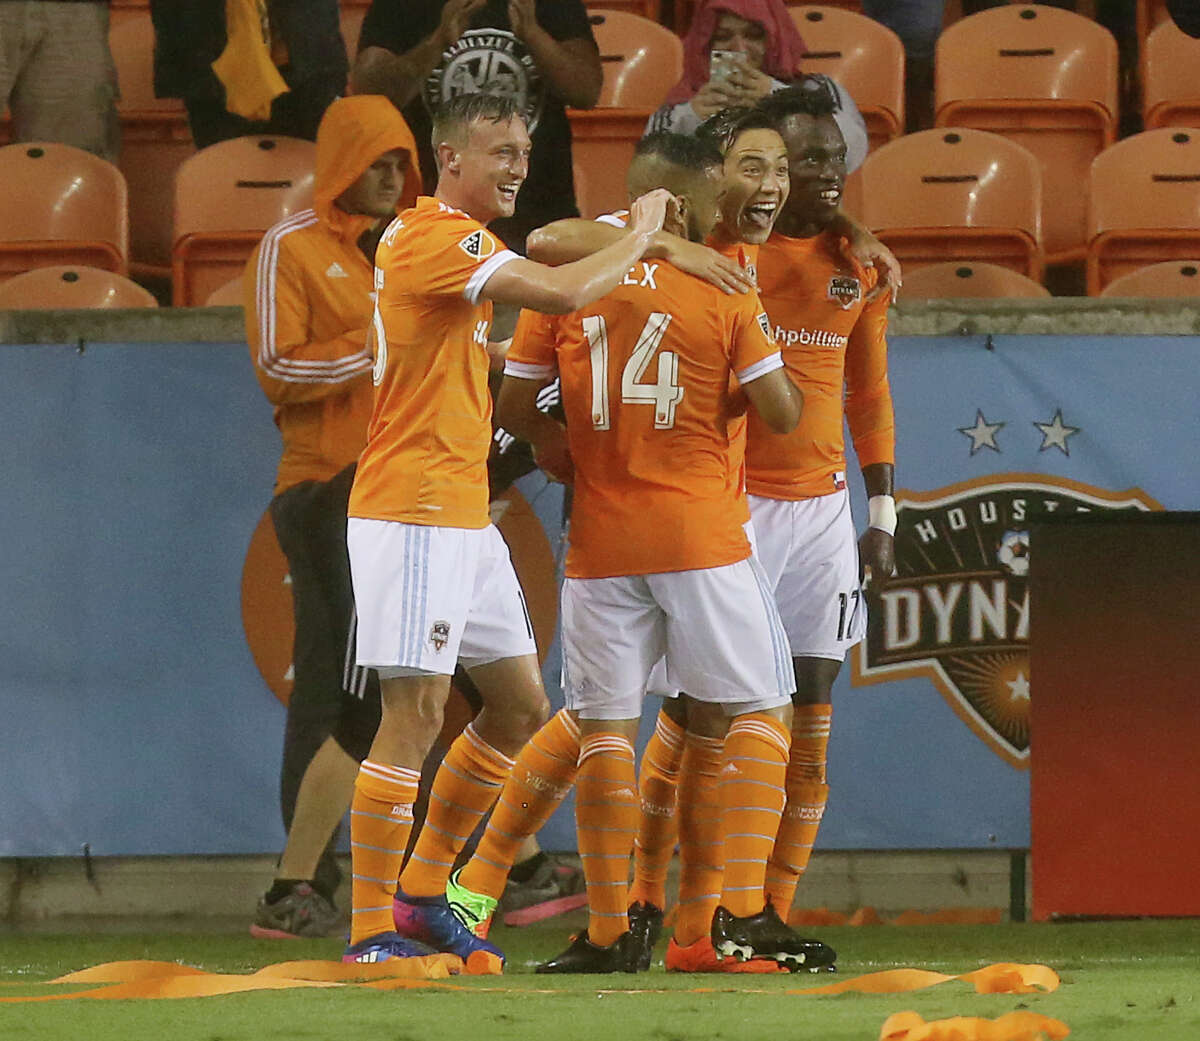 Houston Dynamo forward Erick Torres (9) and teammates celebrate his score during the second half of the MLS soccer game against Columbus Crew SC at BBVA Compass Stadium Saturday, March 11, 2017, in Houston. The Dynamo defeated Columbus, 3-1. ( Yi-Chin Lee / Houston Chronicle )